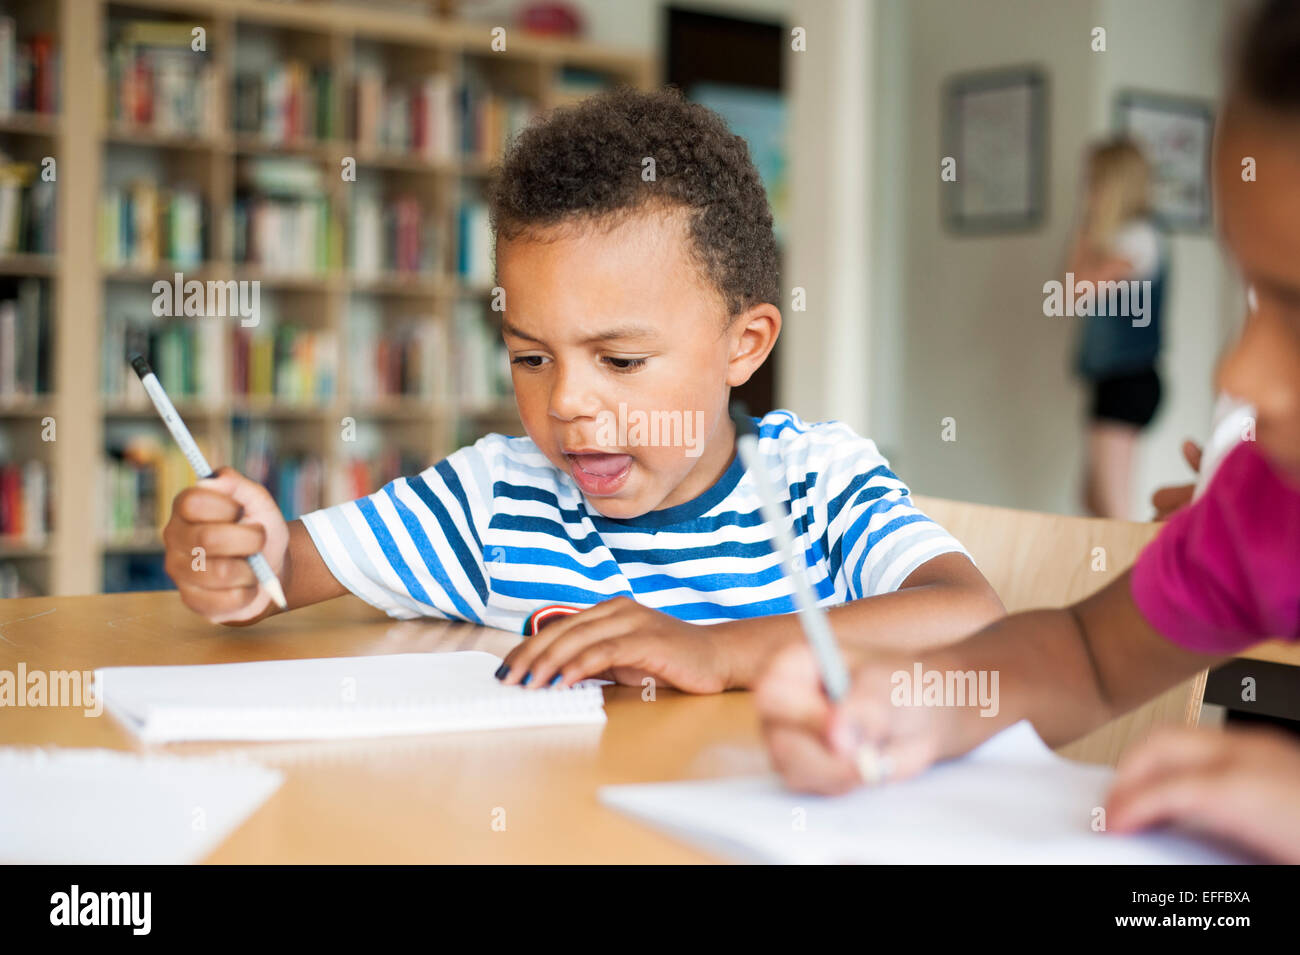 Cute boy writing in book by classmate at classroom - Stock Image